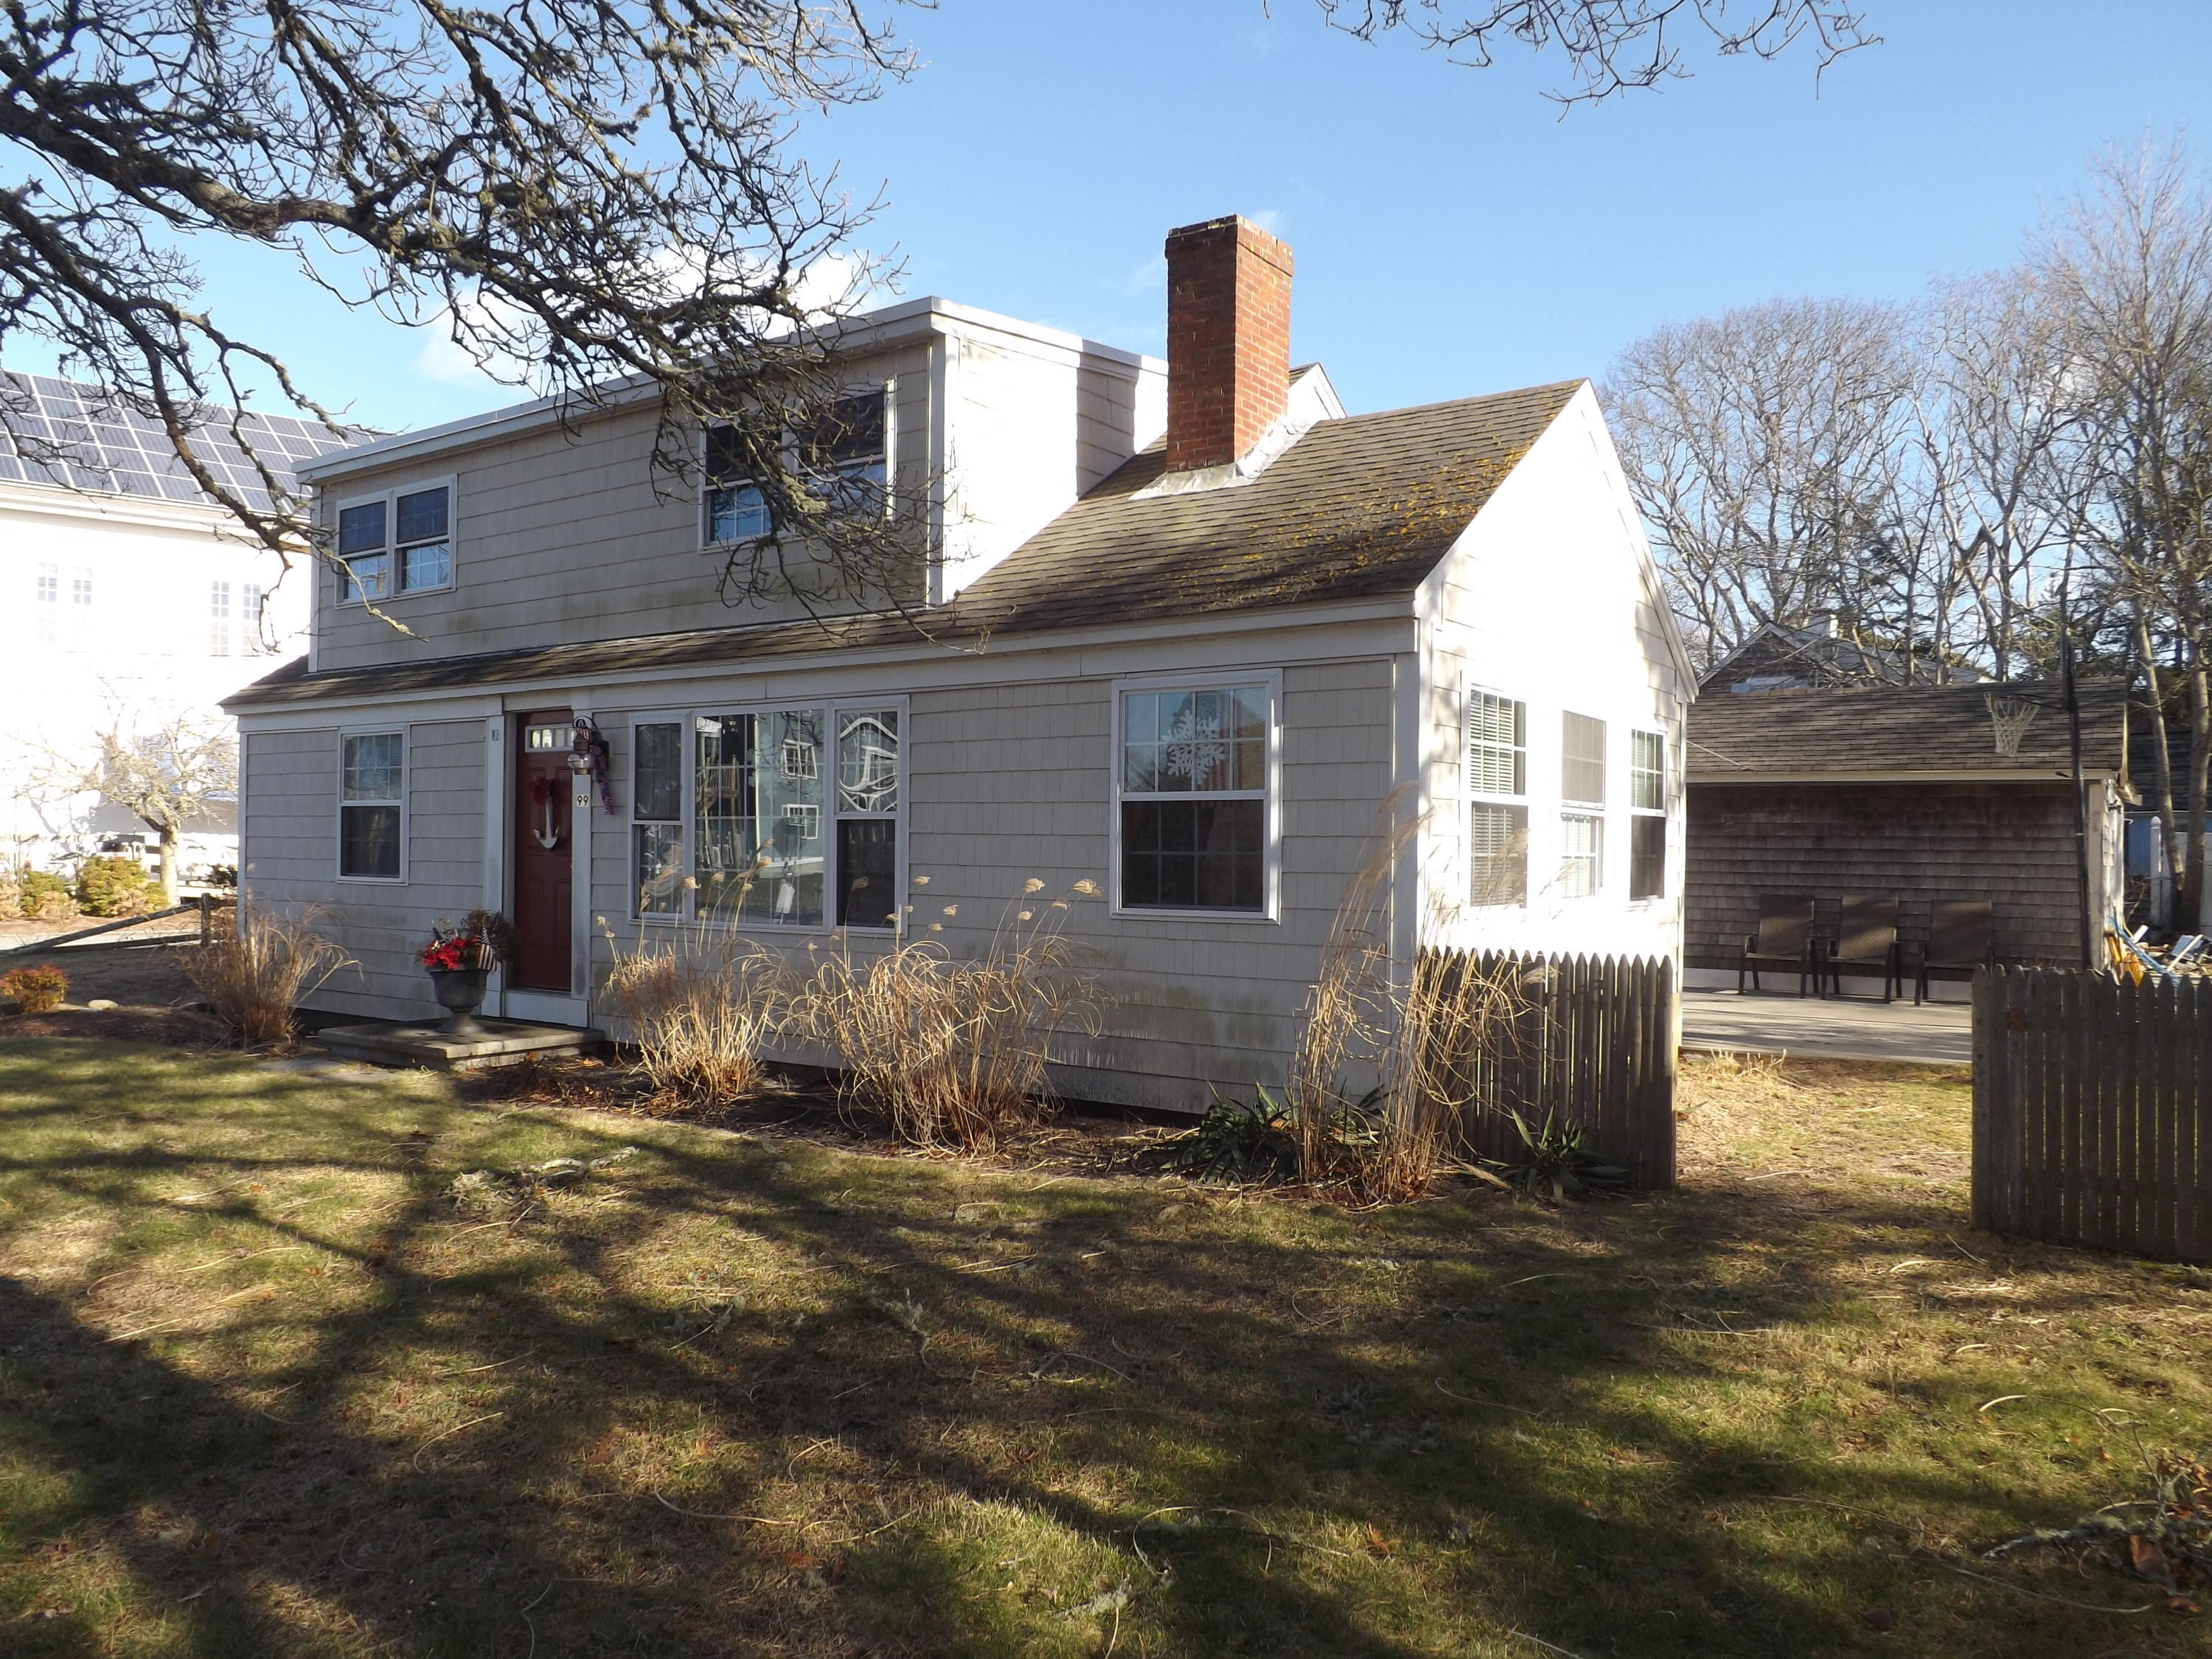 99 Division Street, West Harwich MA, 02671 details